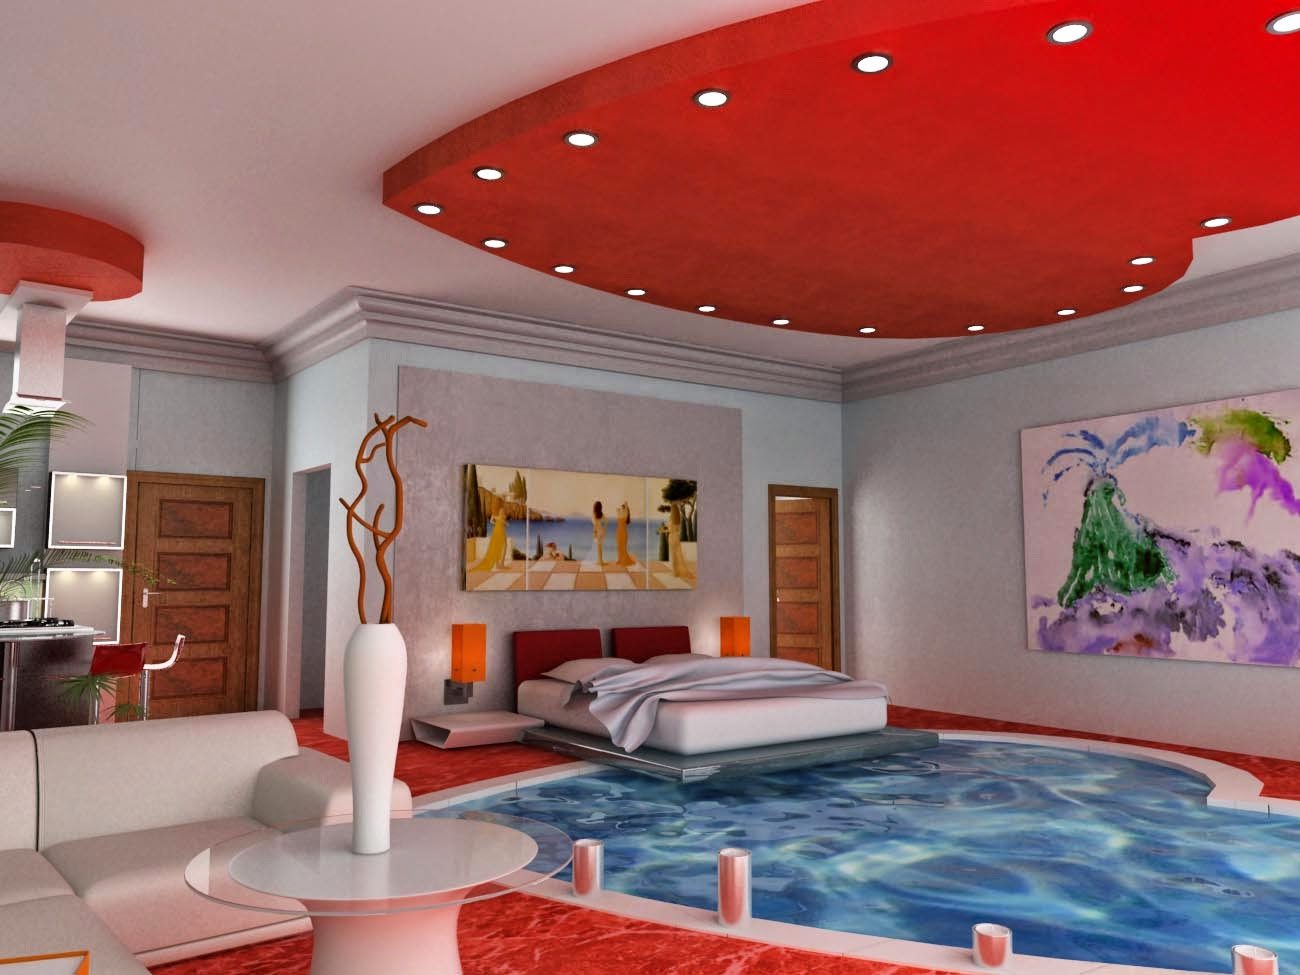 From Pillow To Pool: 25+ Amazing Bedrooms With Pool